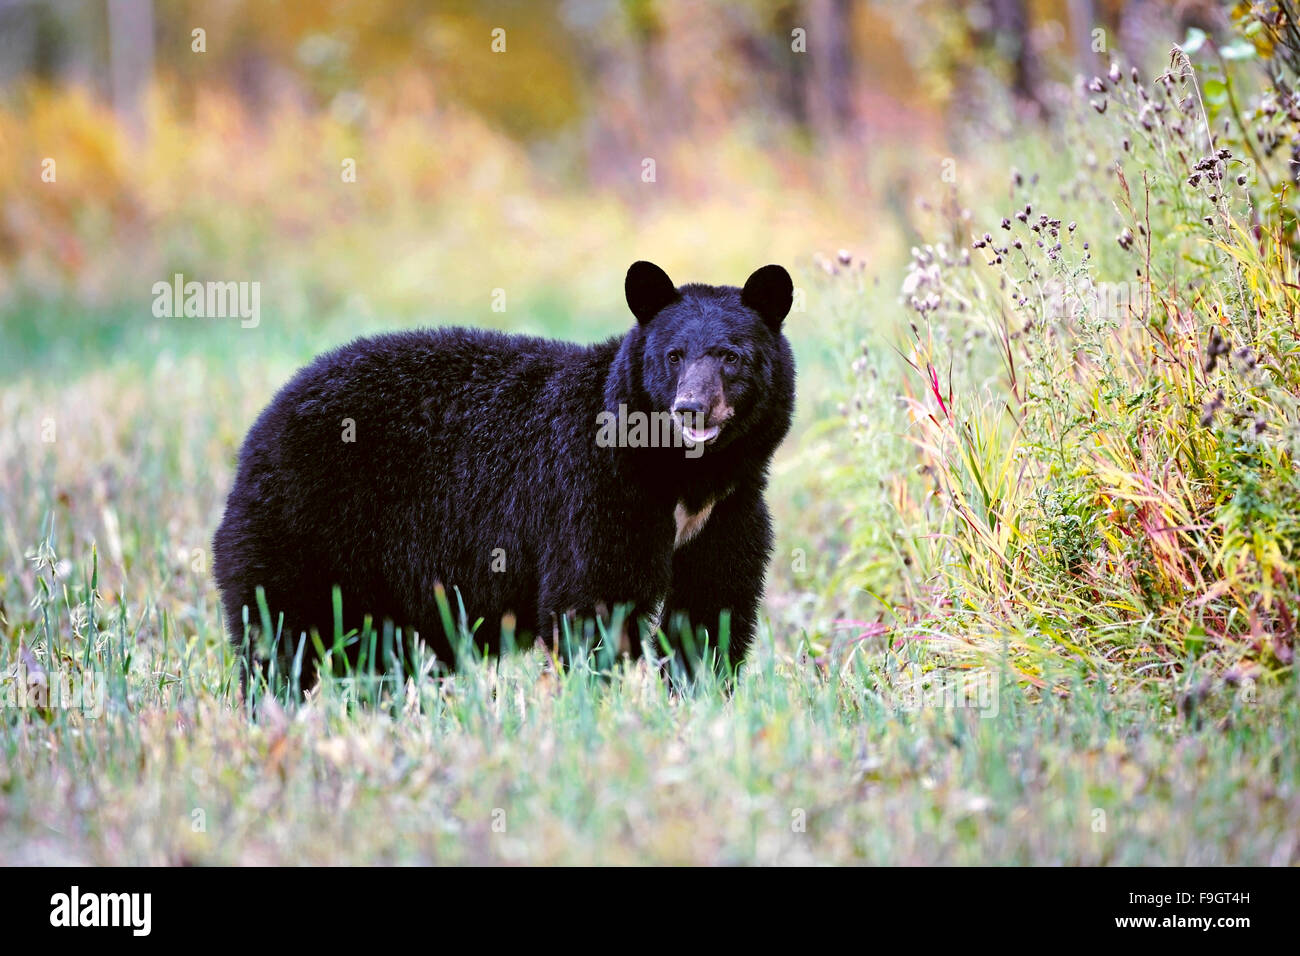 Big female Black Bear standing in meadow, autumn colors Stock Photo